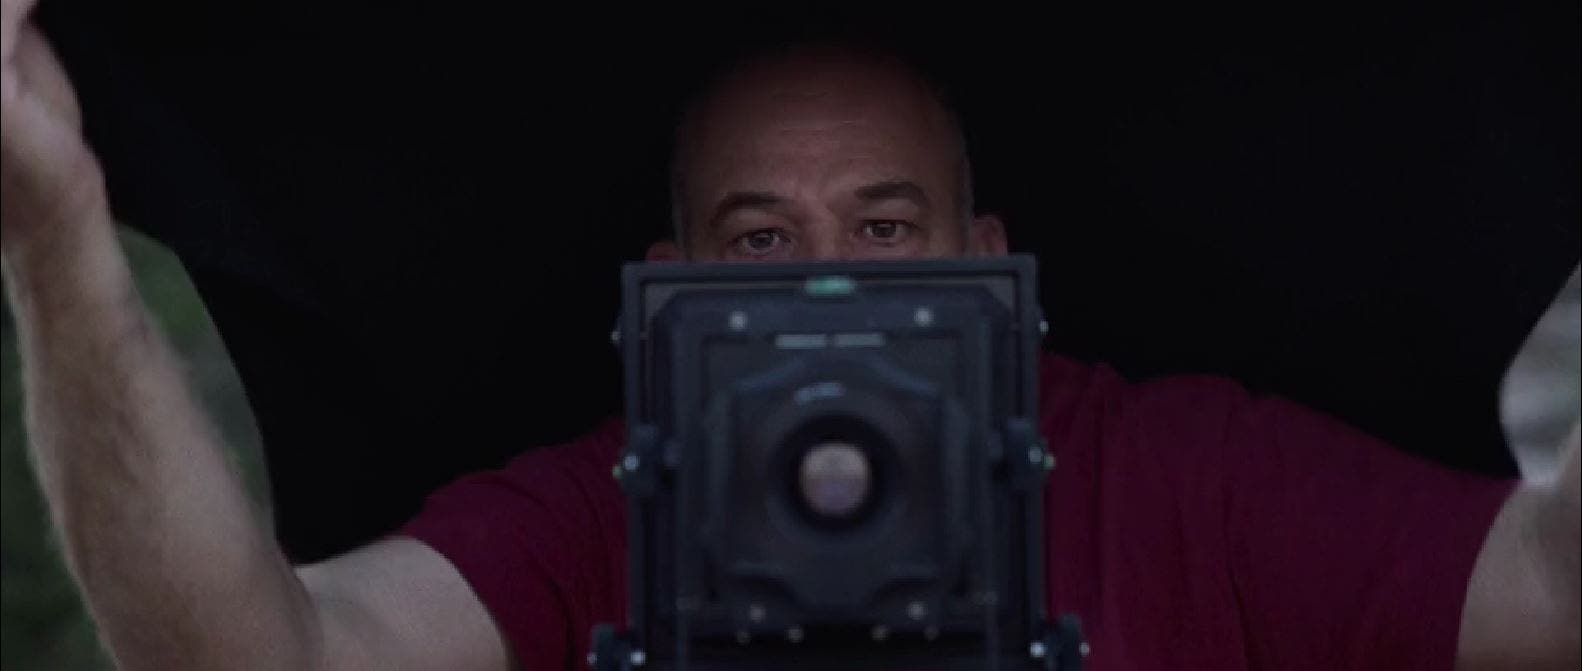 Short Film Explores the Process Behind Analog and Large Format Photography